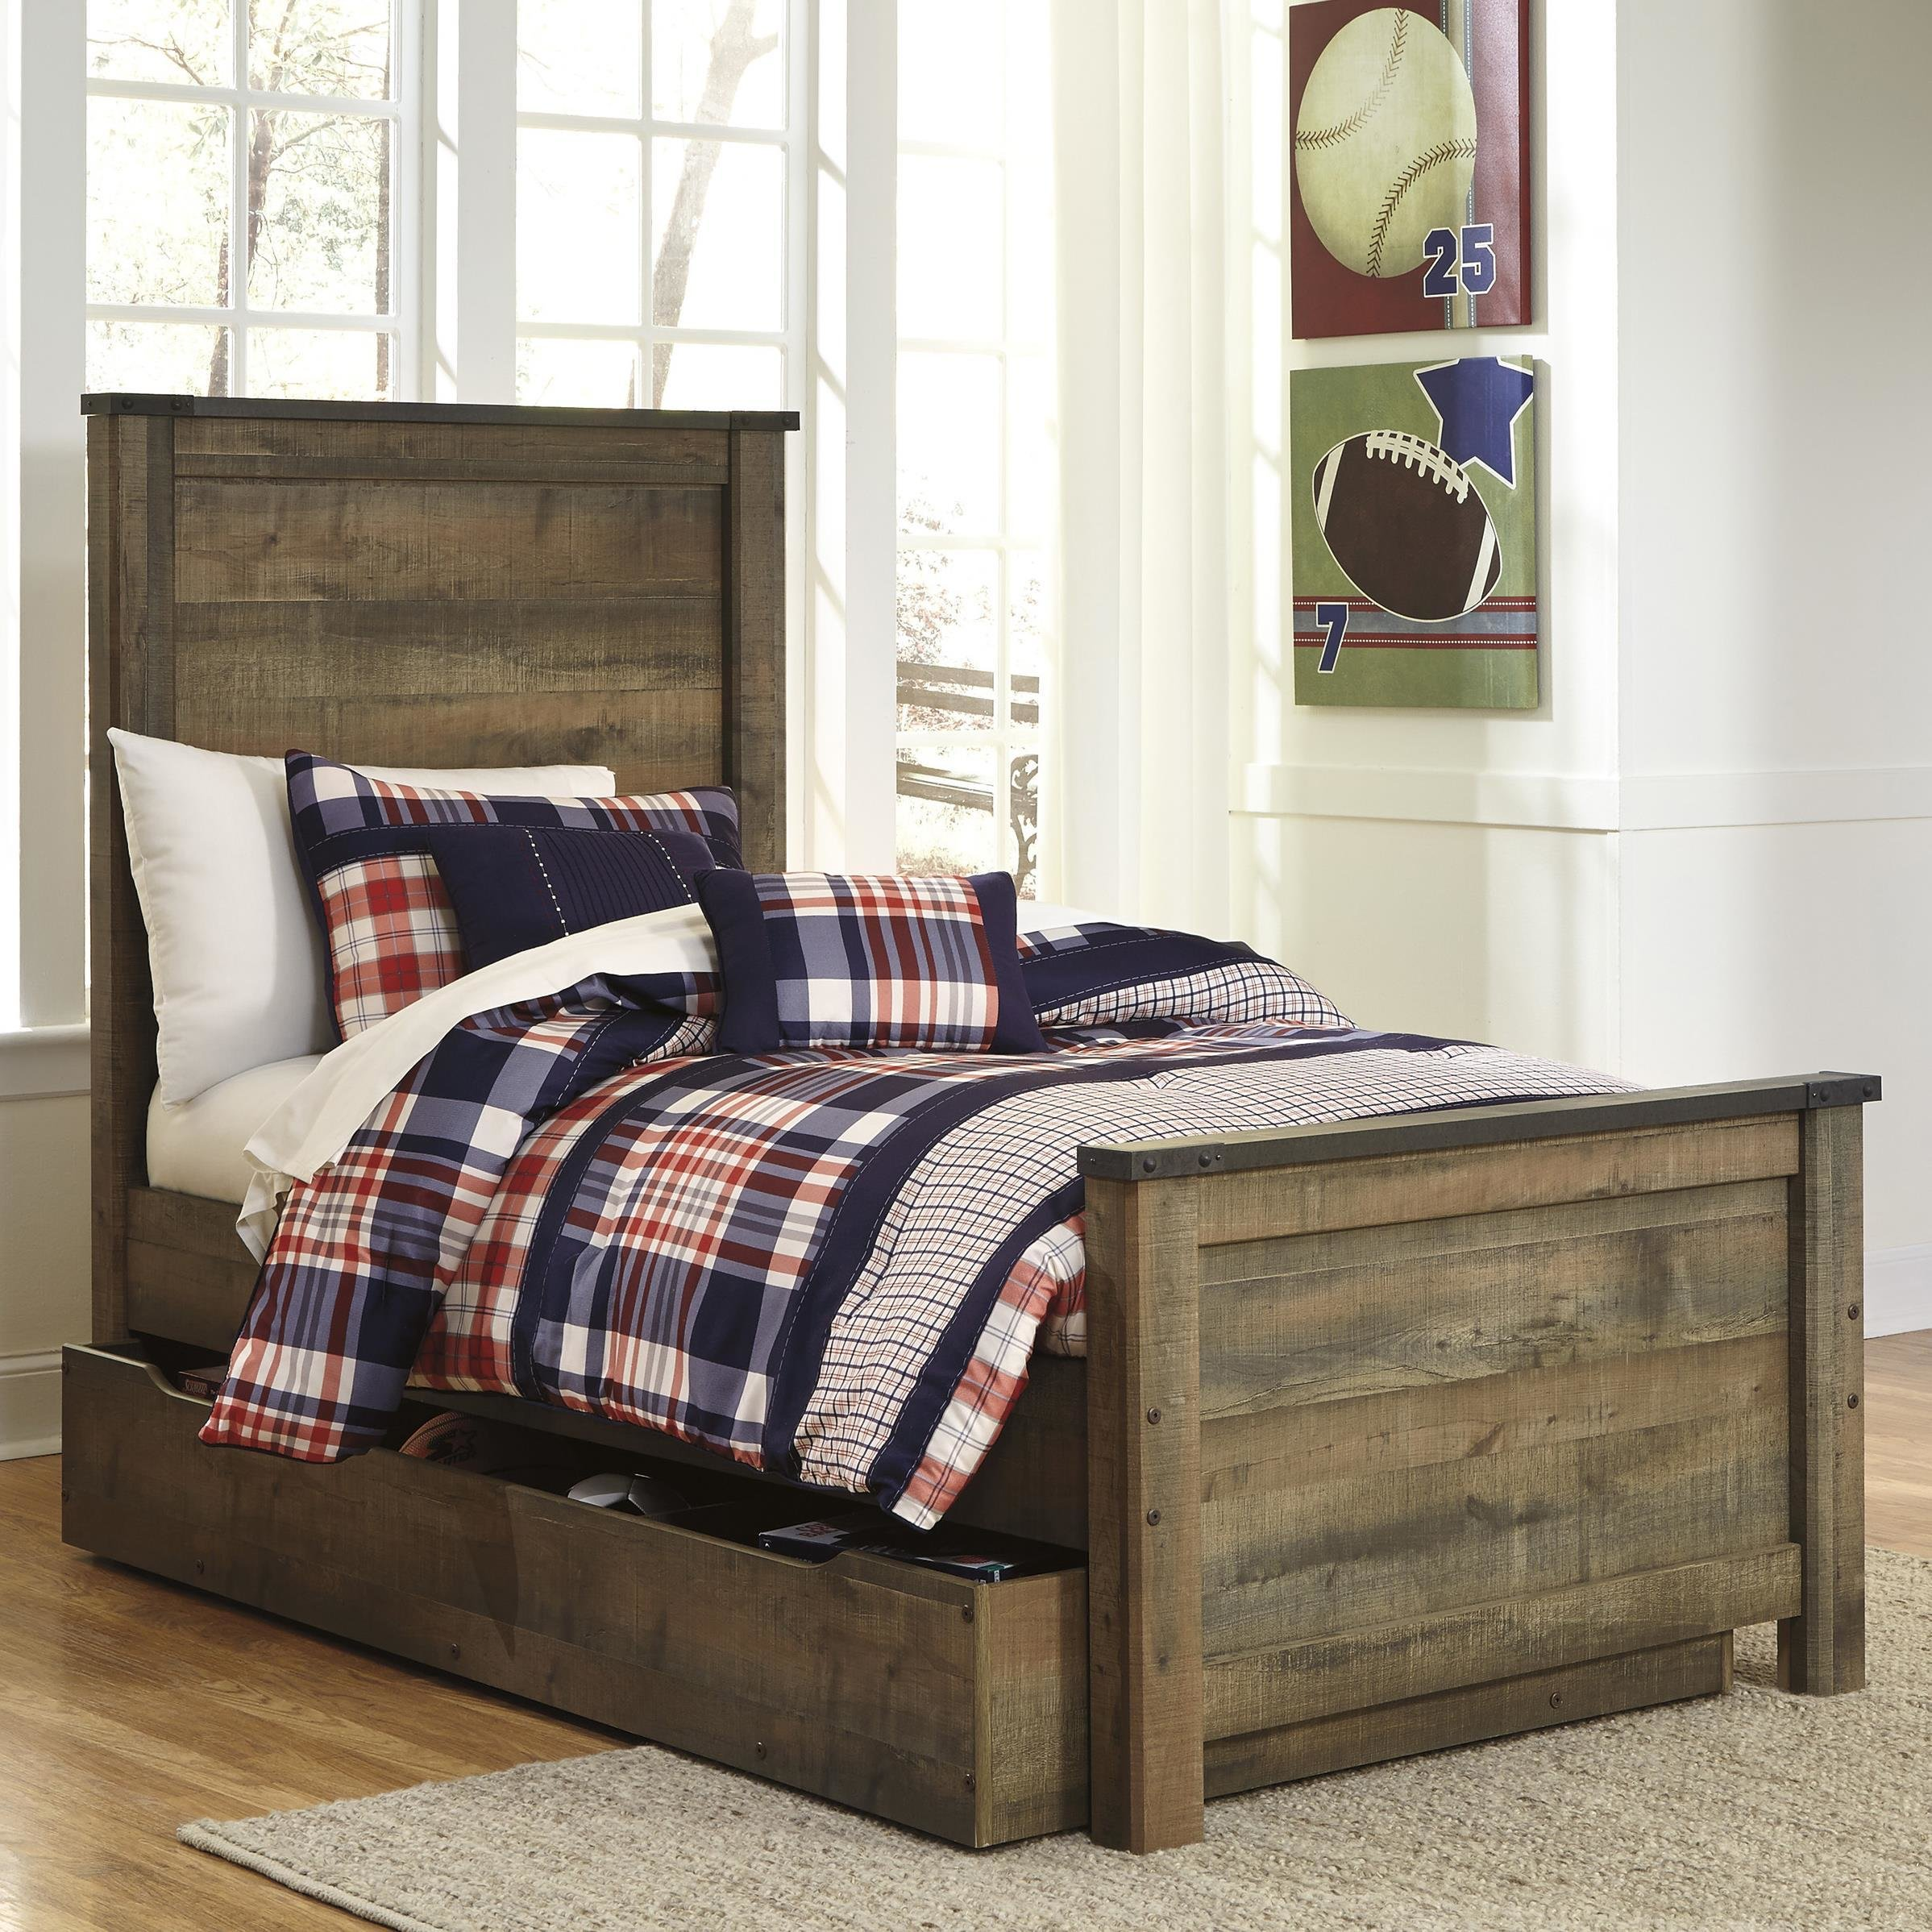 Best Rustic Look Twin Panel Bed With Under Bed Storage Trundle With Pictures